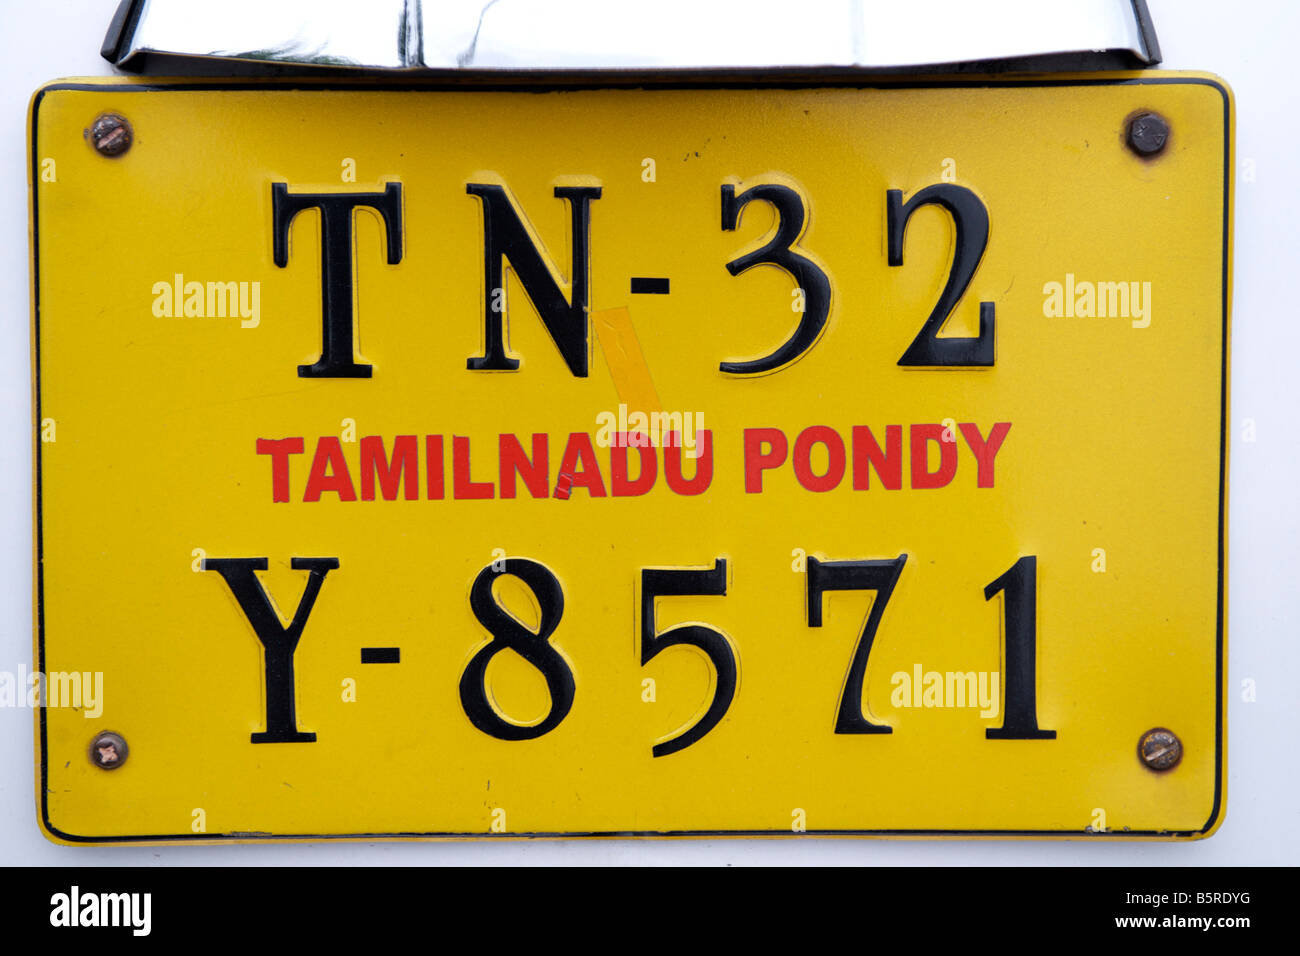 Car registration plate in Pondicherry India. - Stock Image